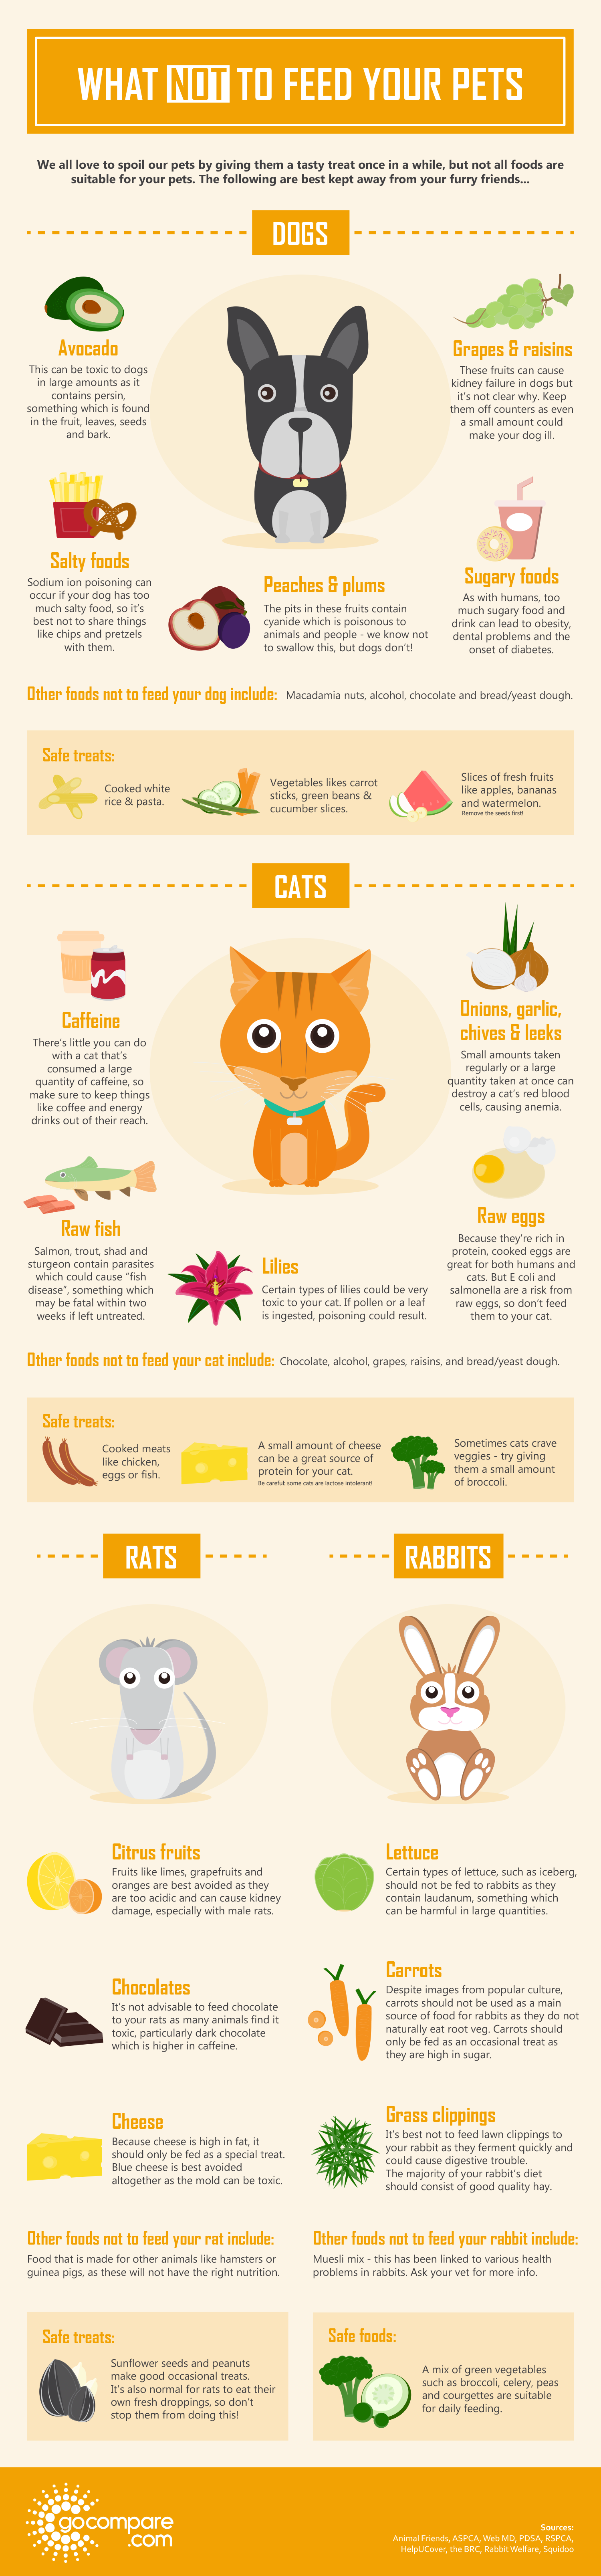 What Your Pets Should Not Eat